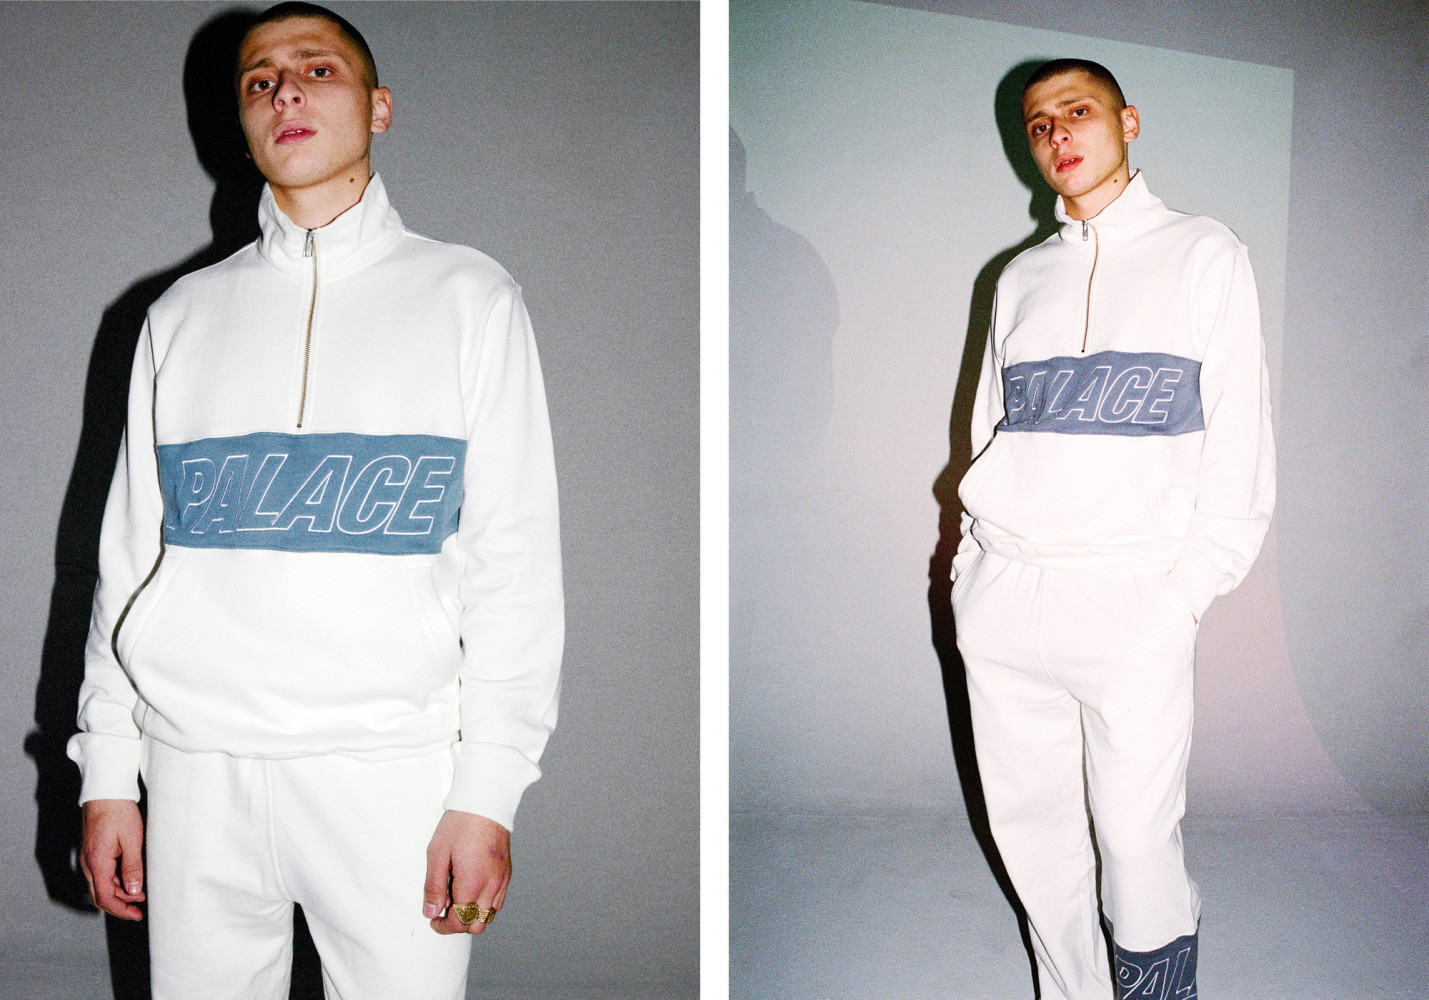 Palace-dover-street-market-collaboration-top-10-noughties-trends-coming-back-leading-London-modelling-agency-IMM